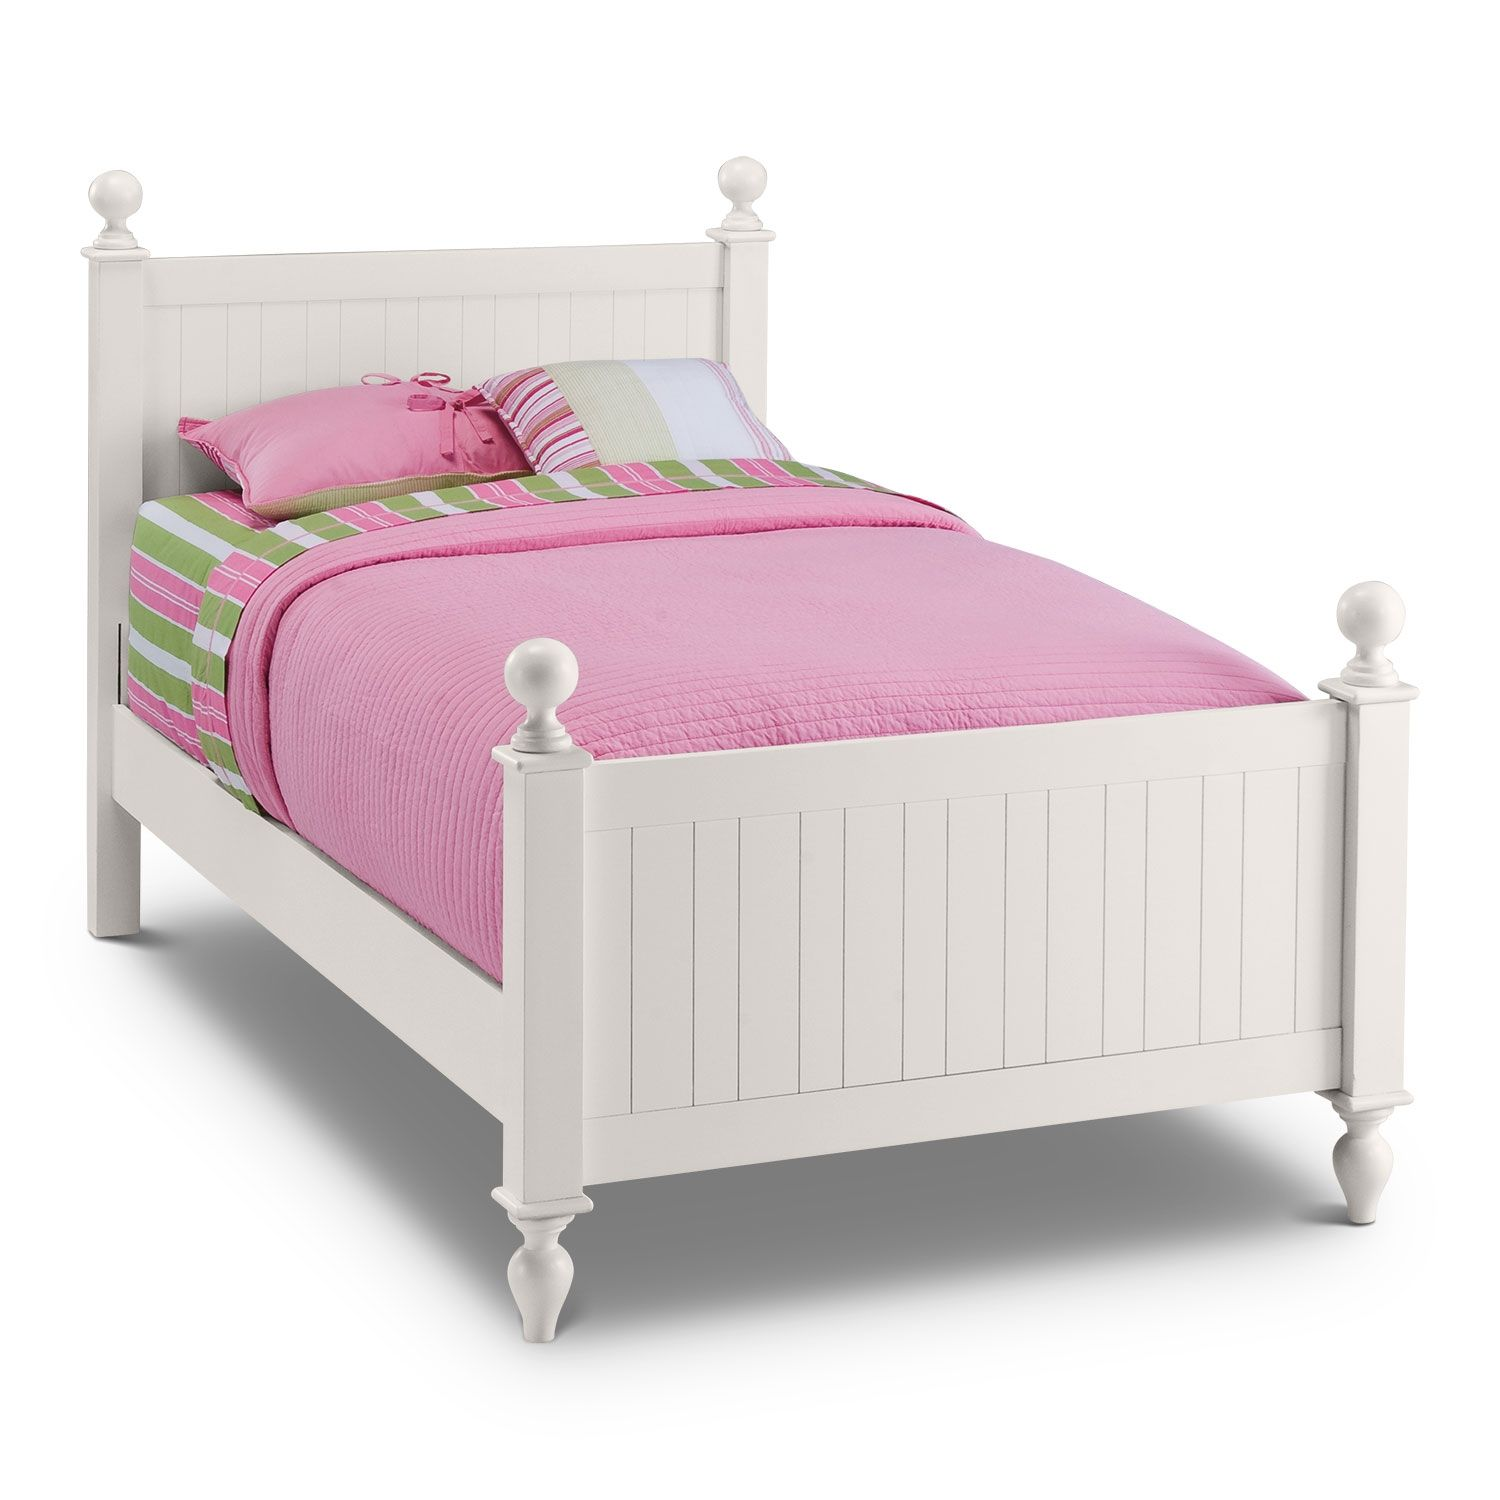 Colorworks Poster Bed White Kids Furniture White Bedding Twin